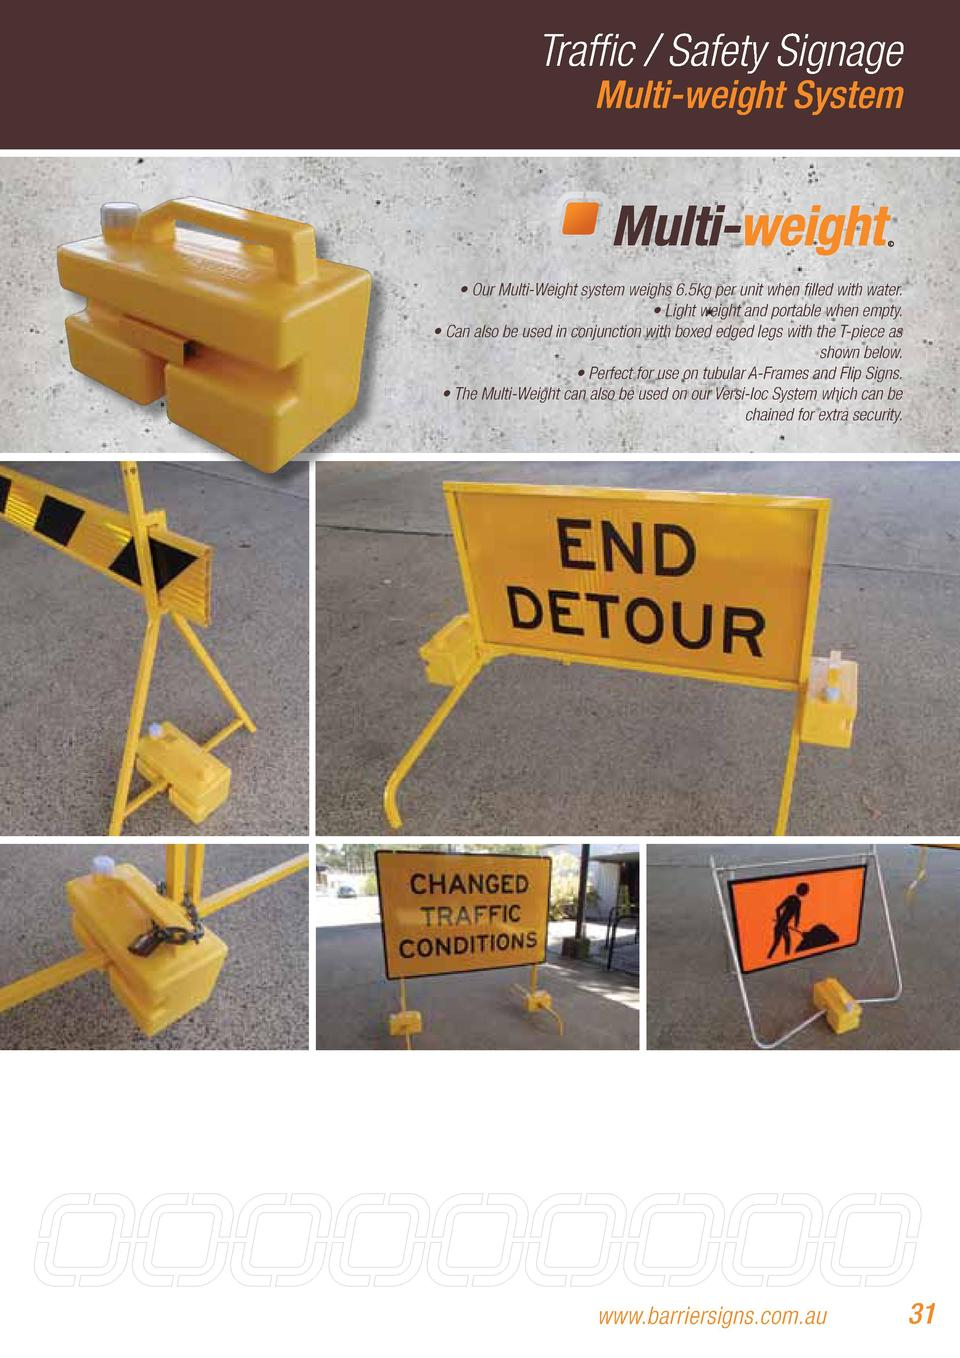 Traffic   Safety Signage Multi-weight System      Our Multi-Weight system weighs 6.5kg per unit when filled with water.   ...